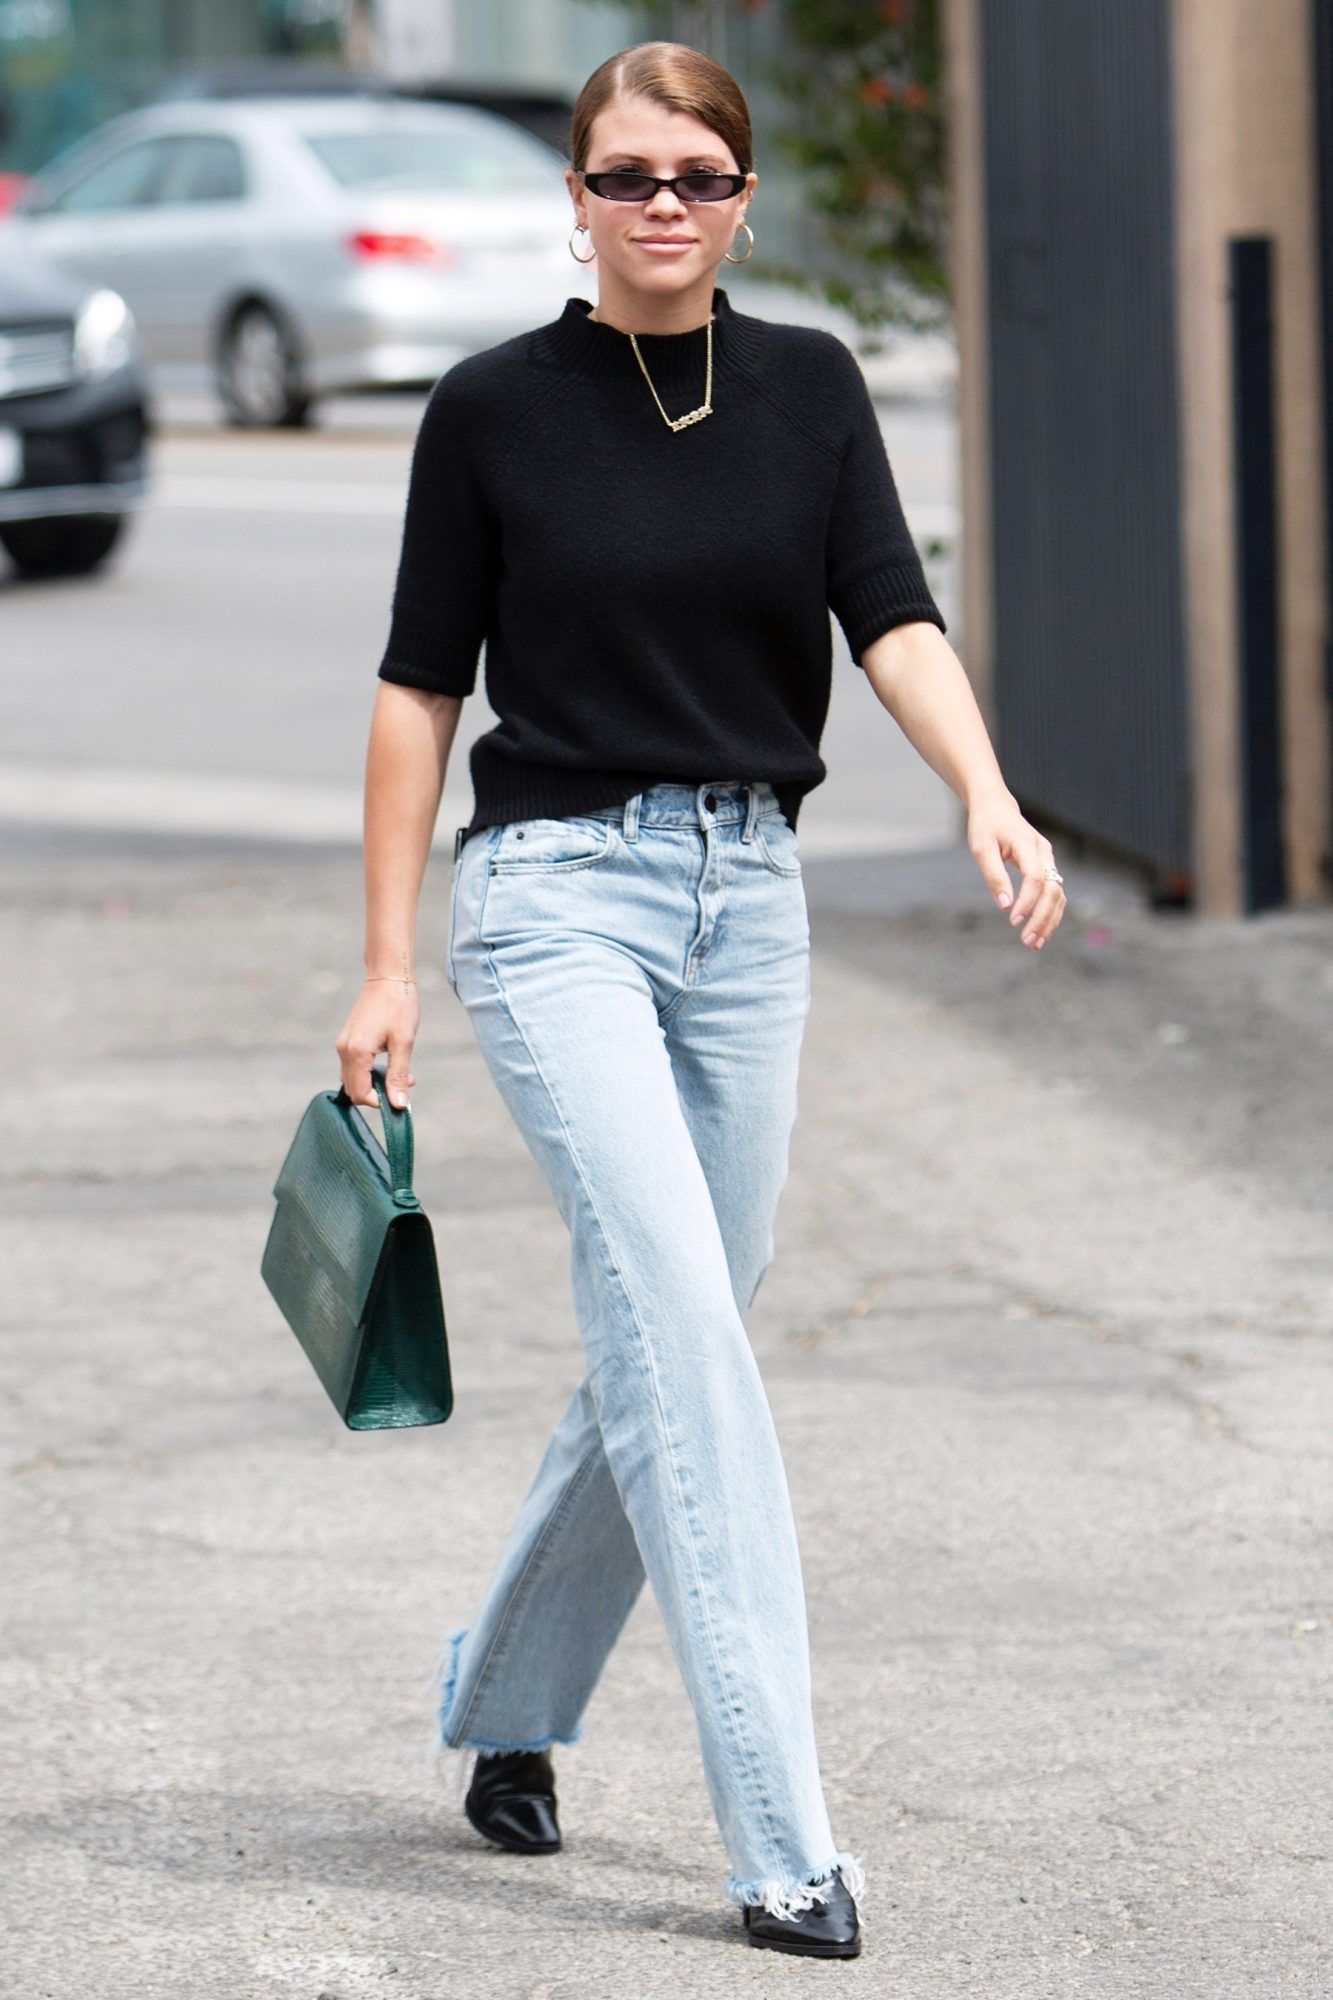 Sofia Richie looks chic as she leaves Zimmermann Boutique after shopping